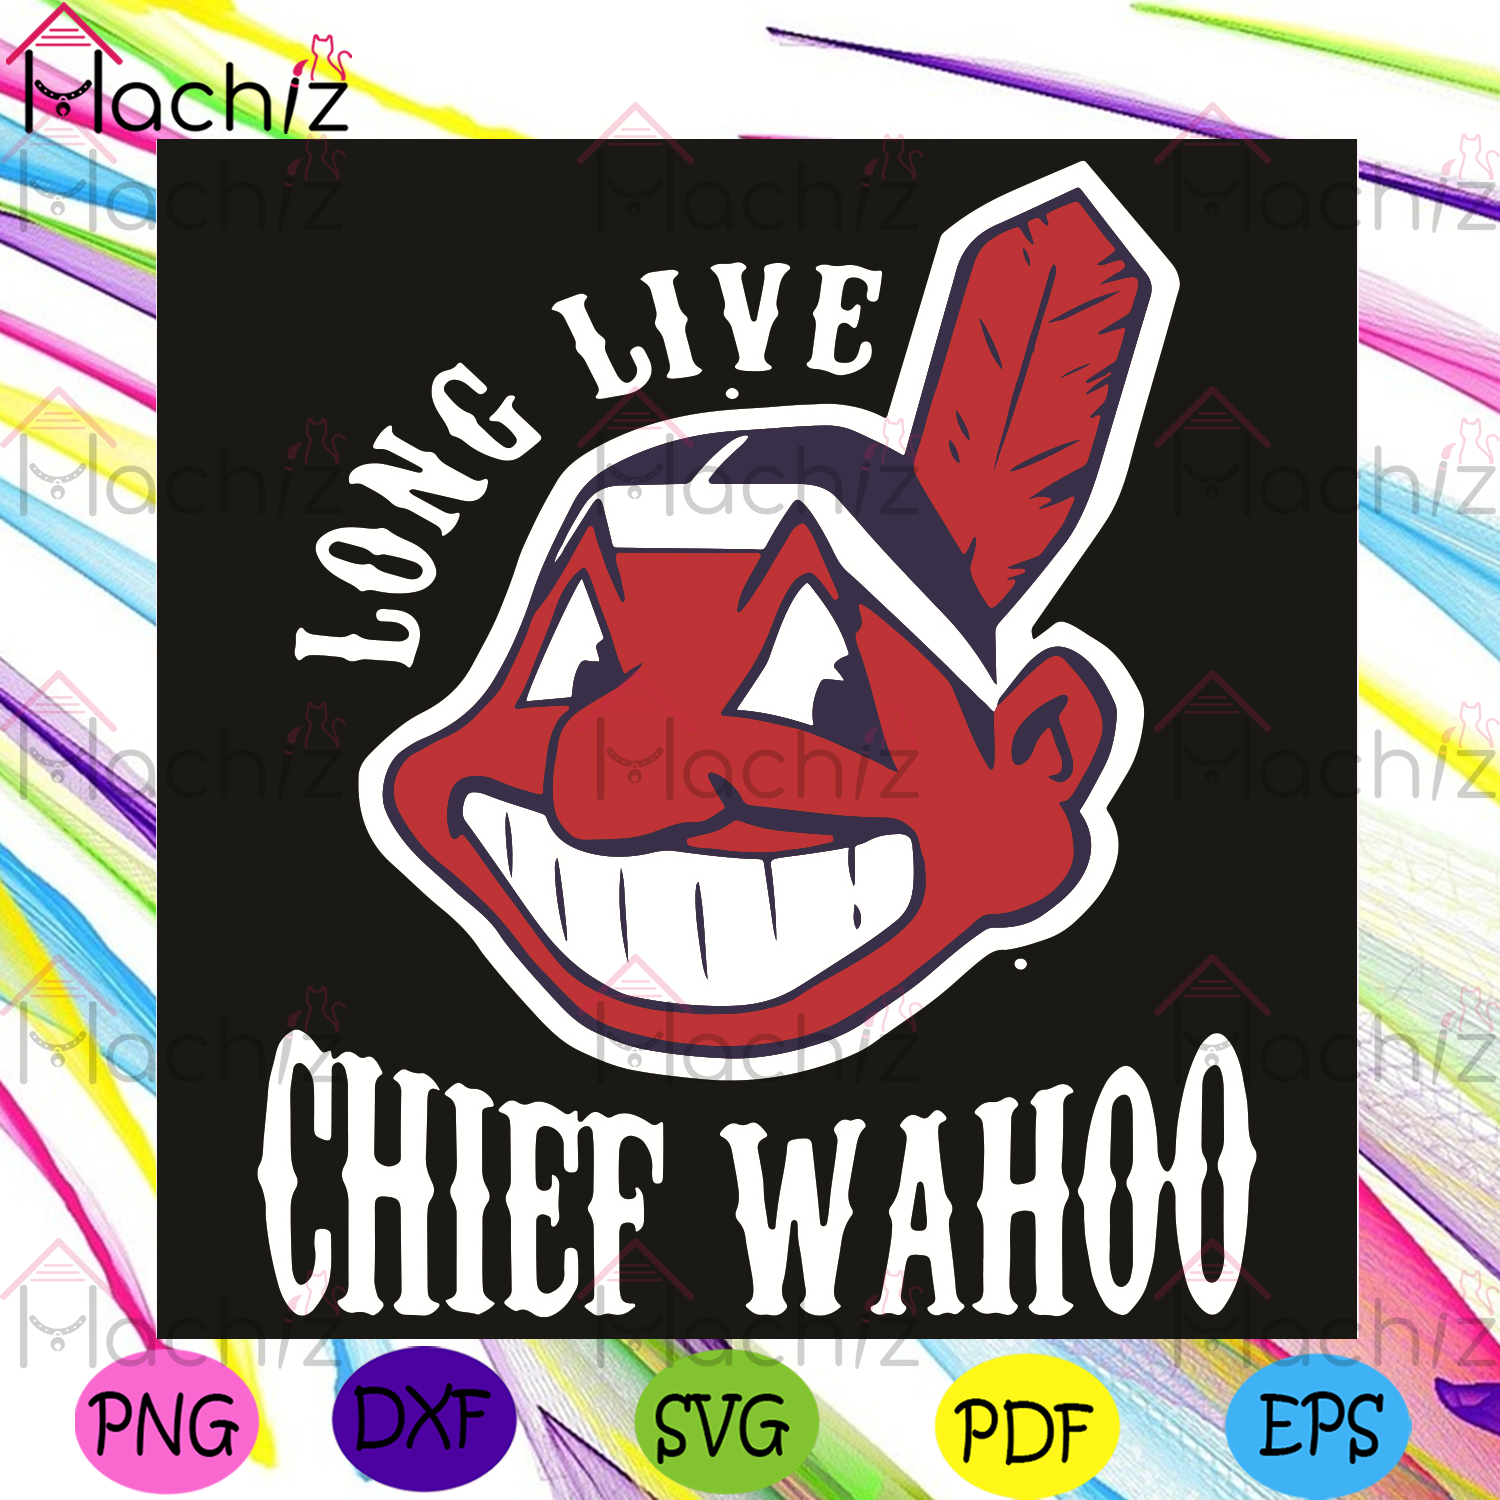 Long Live Chief Wahoo Svg, Trending Svg, Wahoo Svg, Chief Svg, Tribe Svg, Red Indian Svg, Aboriginal Svg, Aboriginal Chief Svg, Chief Wahoo Svg, Happy Chief Svg, Funny Man Svg, Funny Design Svg, Long Live Svg, Funny Quotes Svg